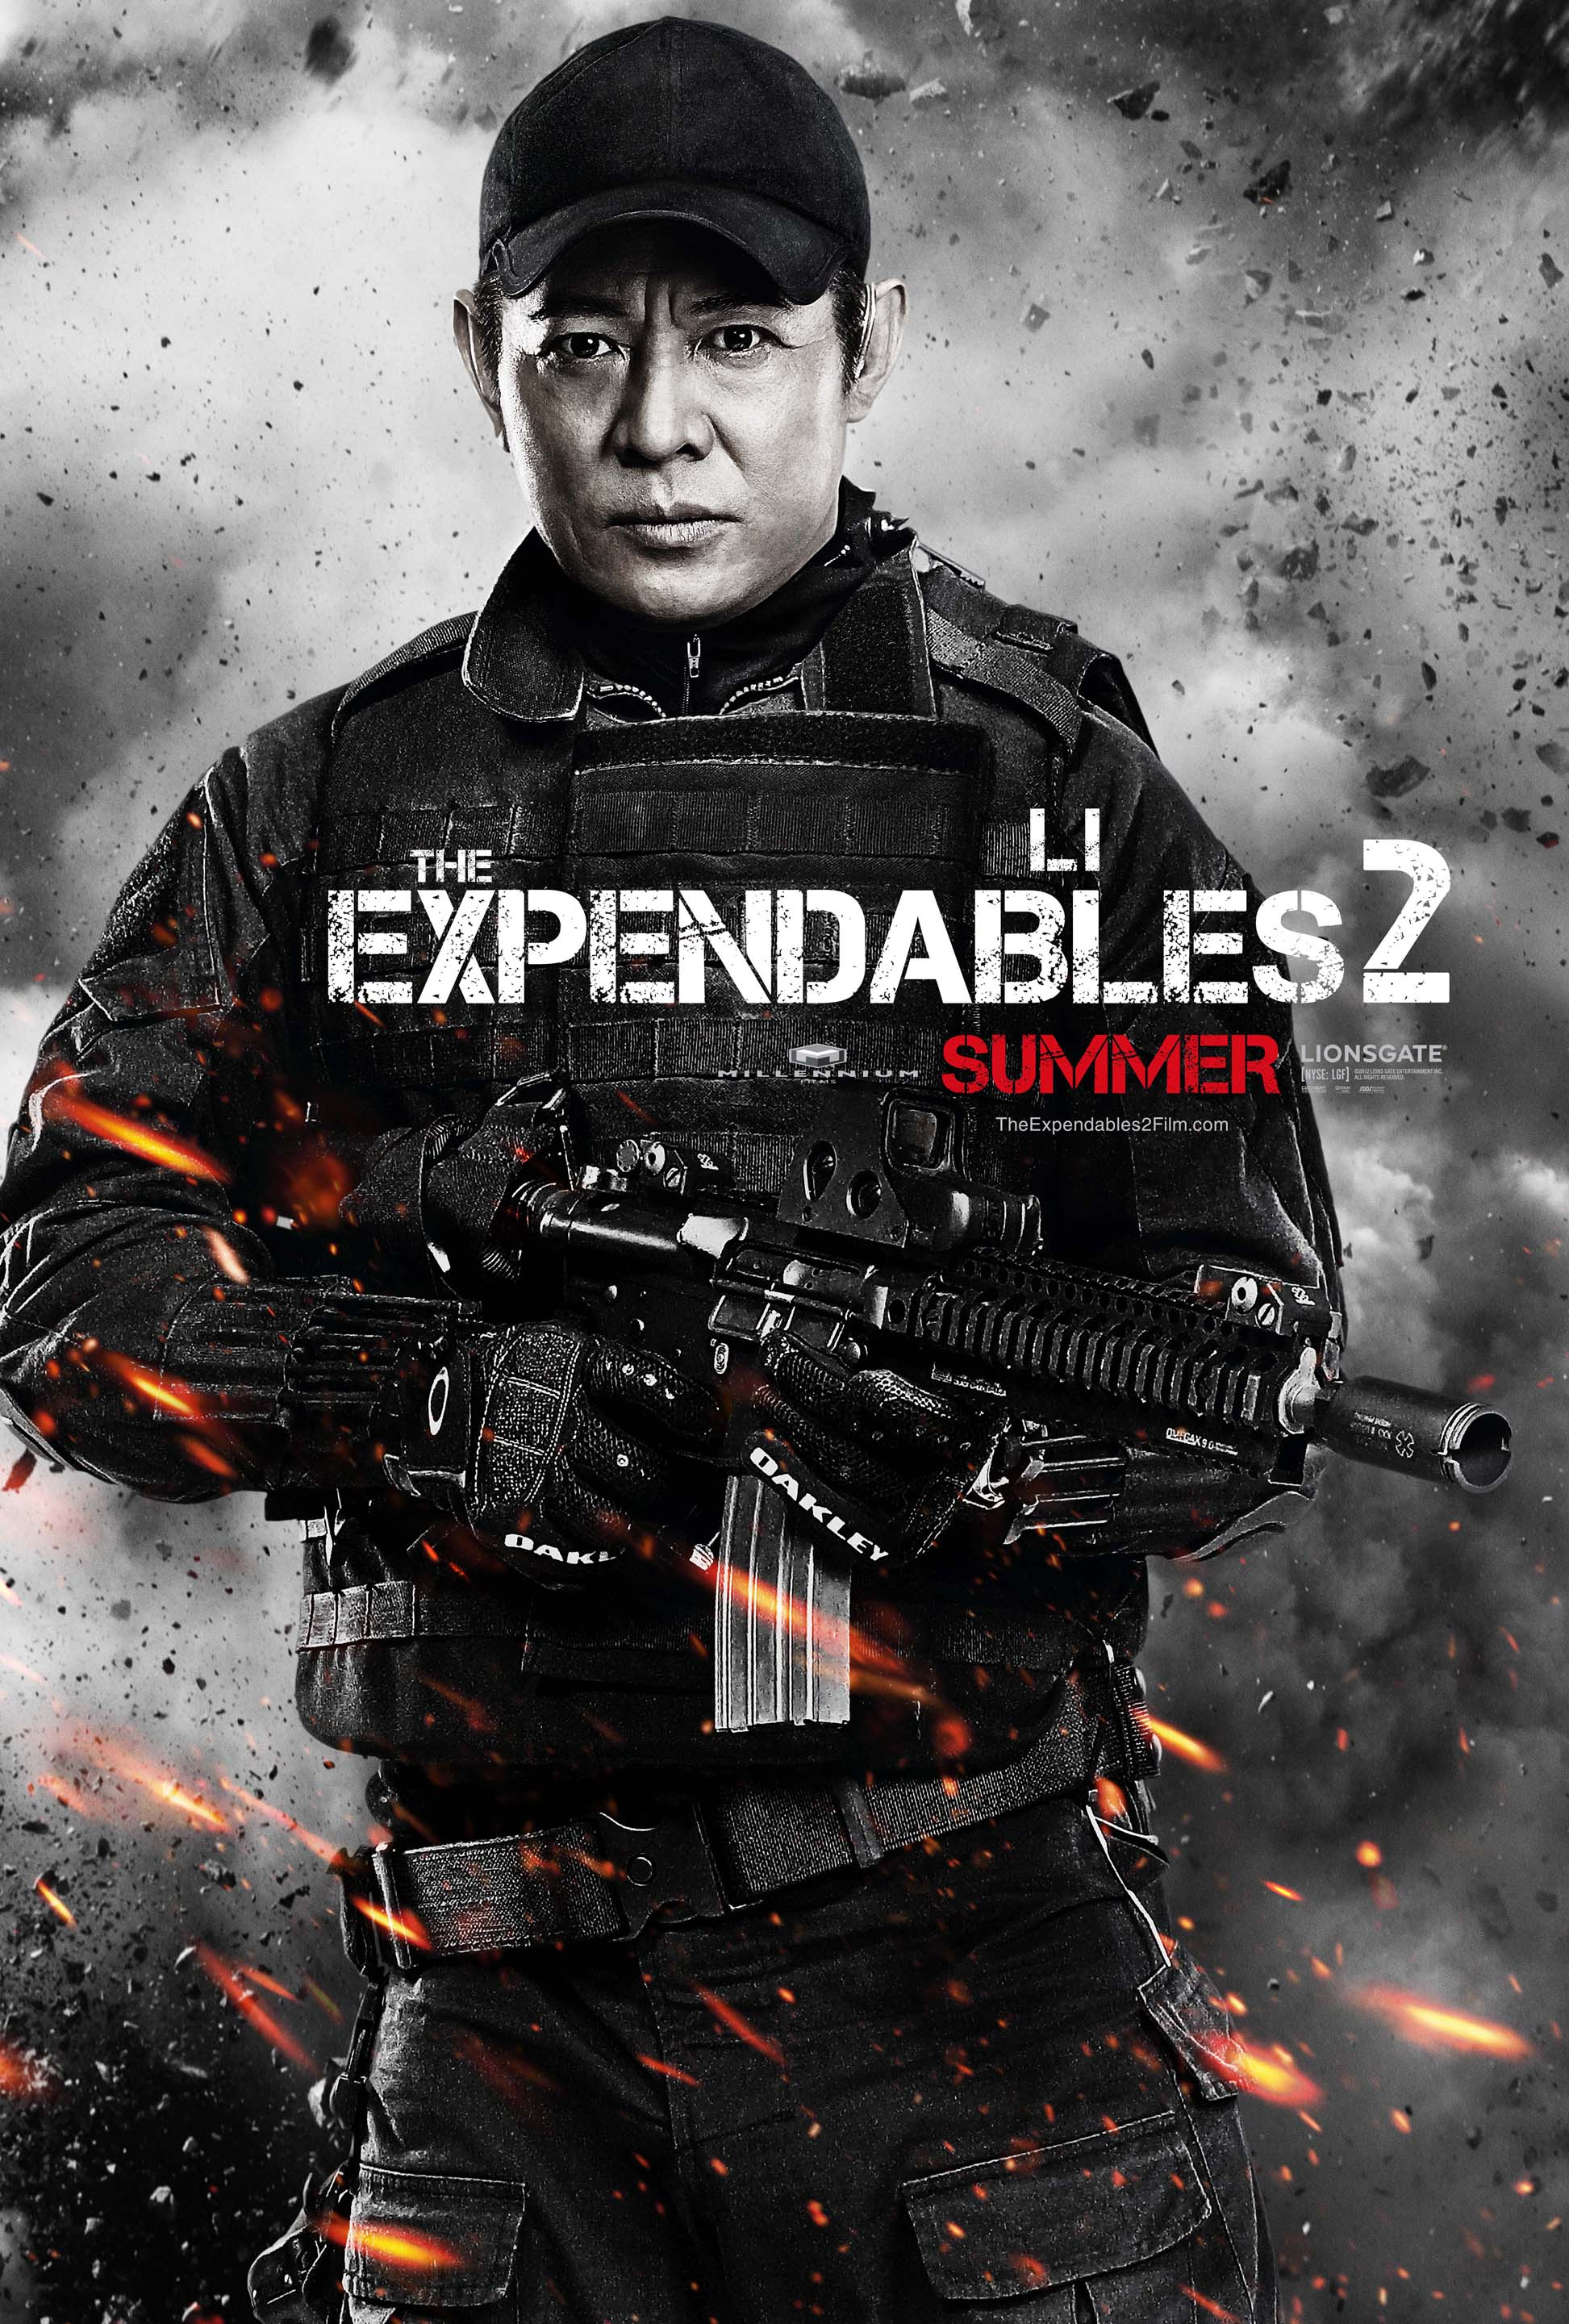 uk exclusive character poster - jet li in the expendables 2 - heyuguys